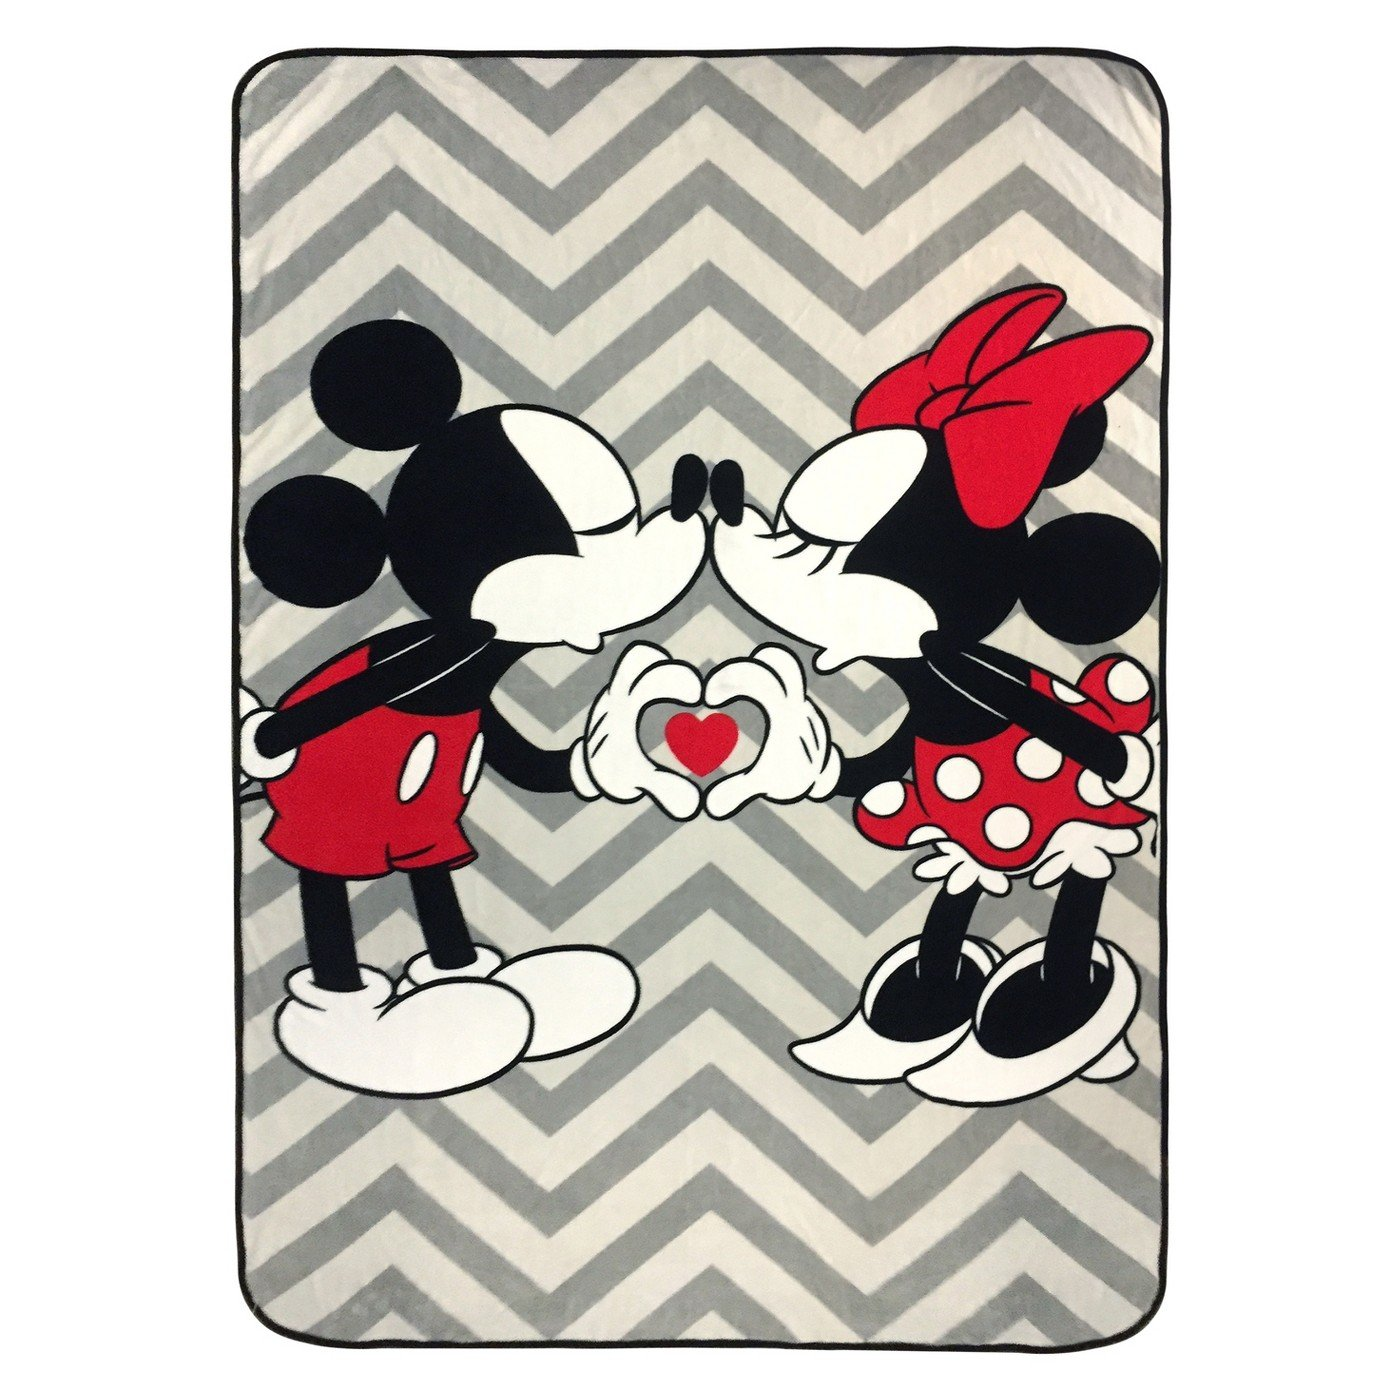 Disney Mickey Mouse & Minnie Mouse Twin Bed Blanket Gray/Black